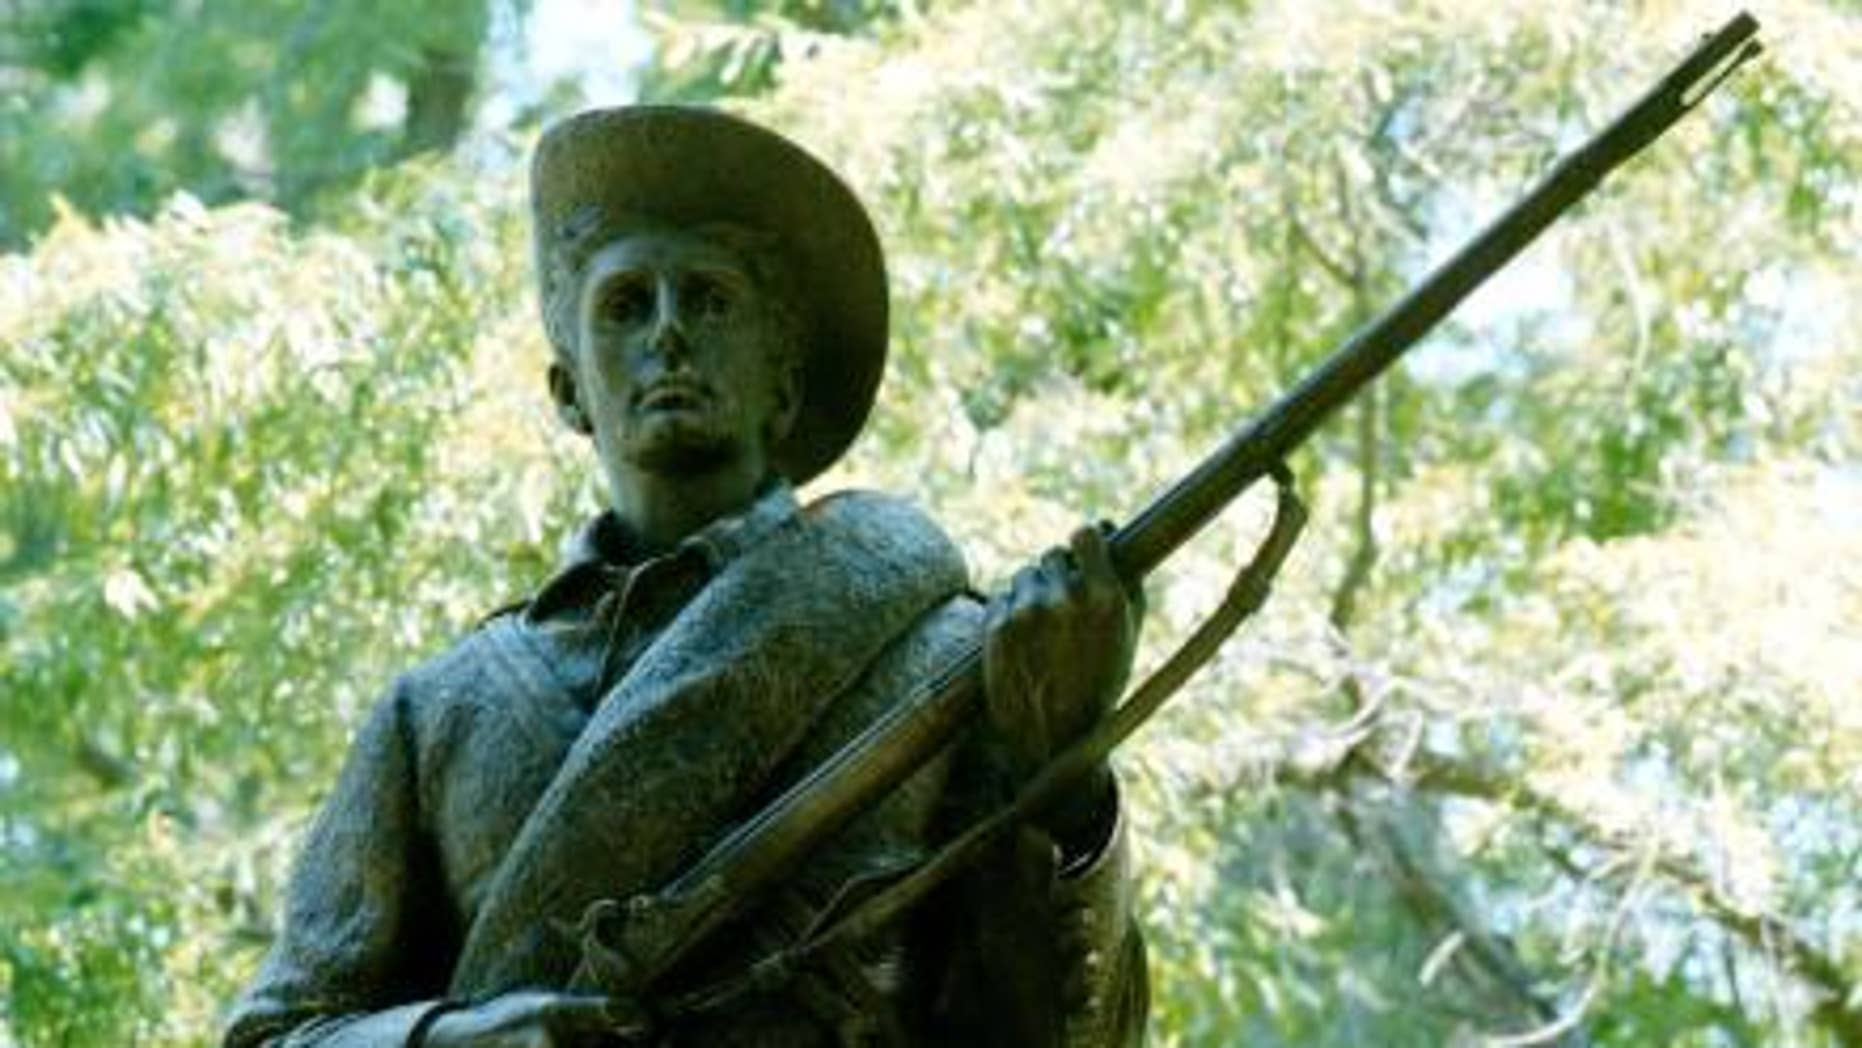 """Lawyers representing students and a professor are asking the University of North Carolina to remove its """"Silent Sam"""" statue."""